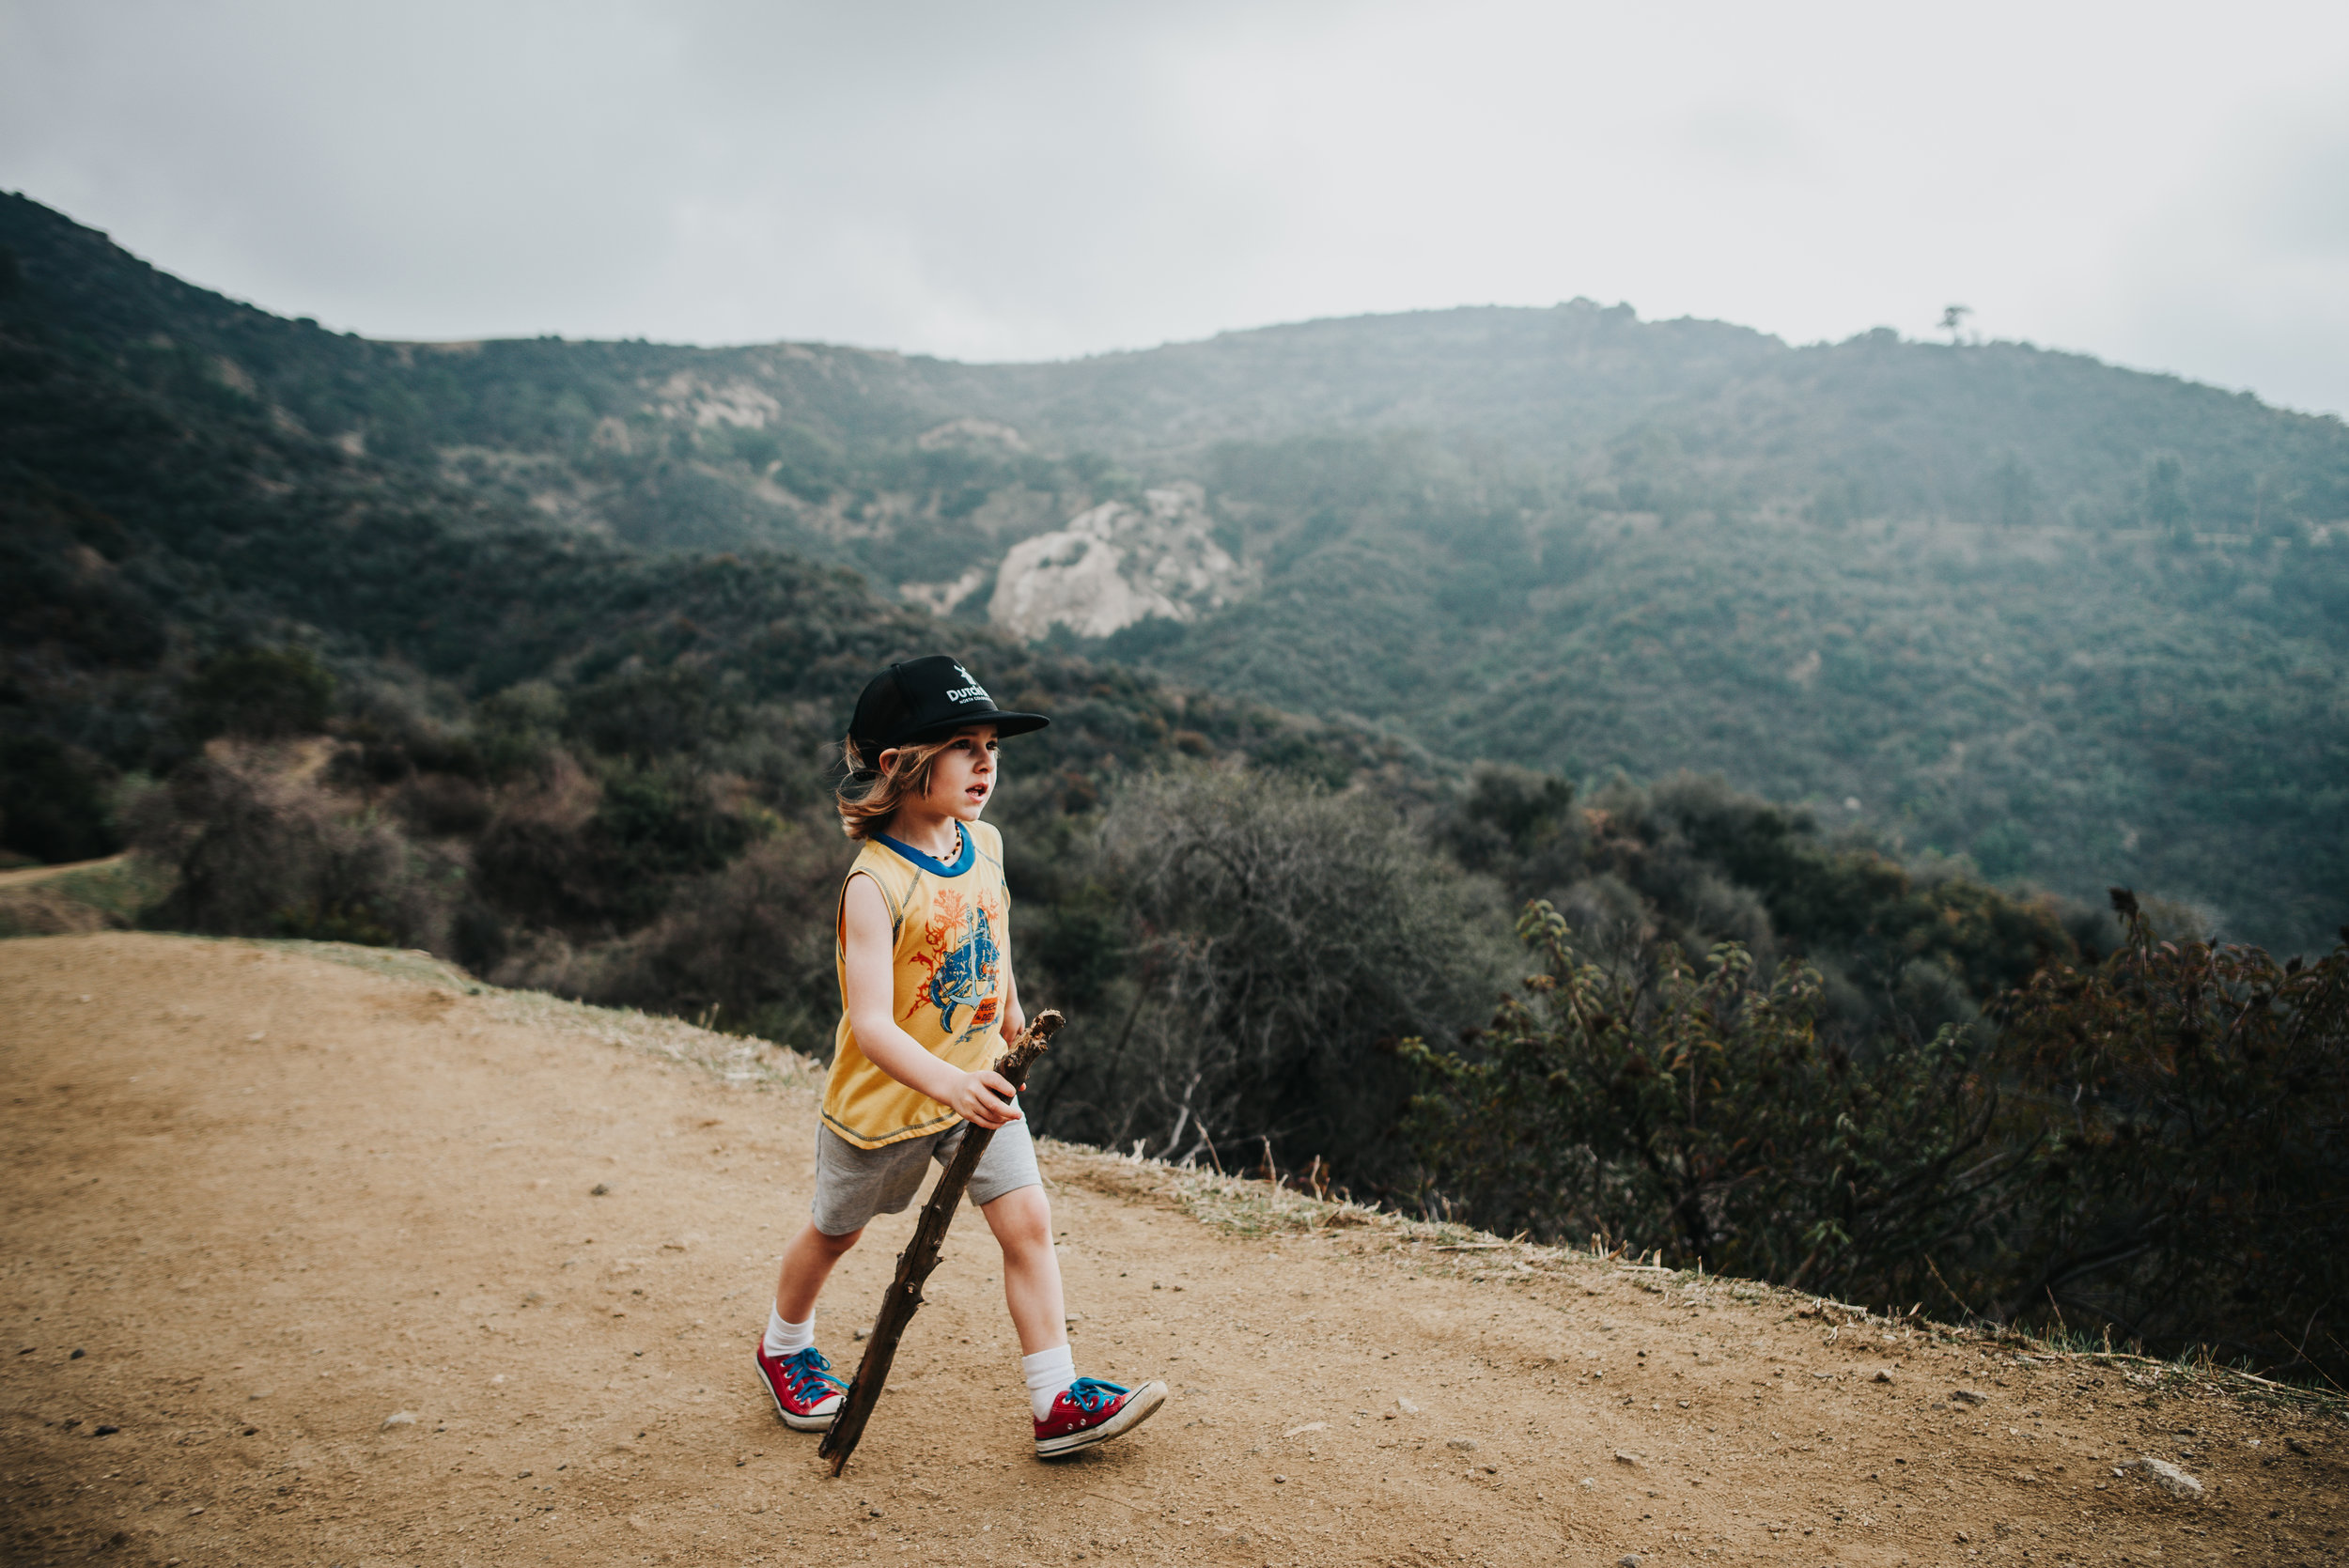 Little boy hikes the trail up to visit the Hollywood sign in Hollywood, California.